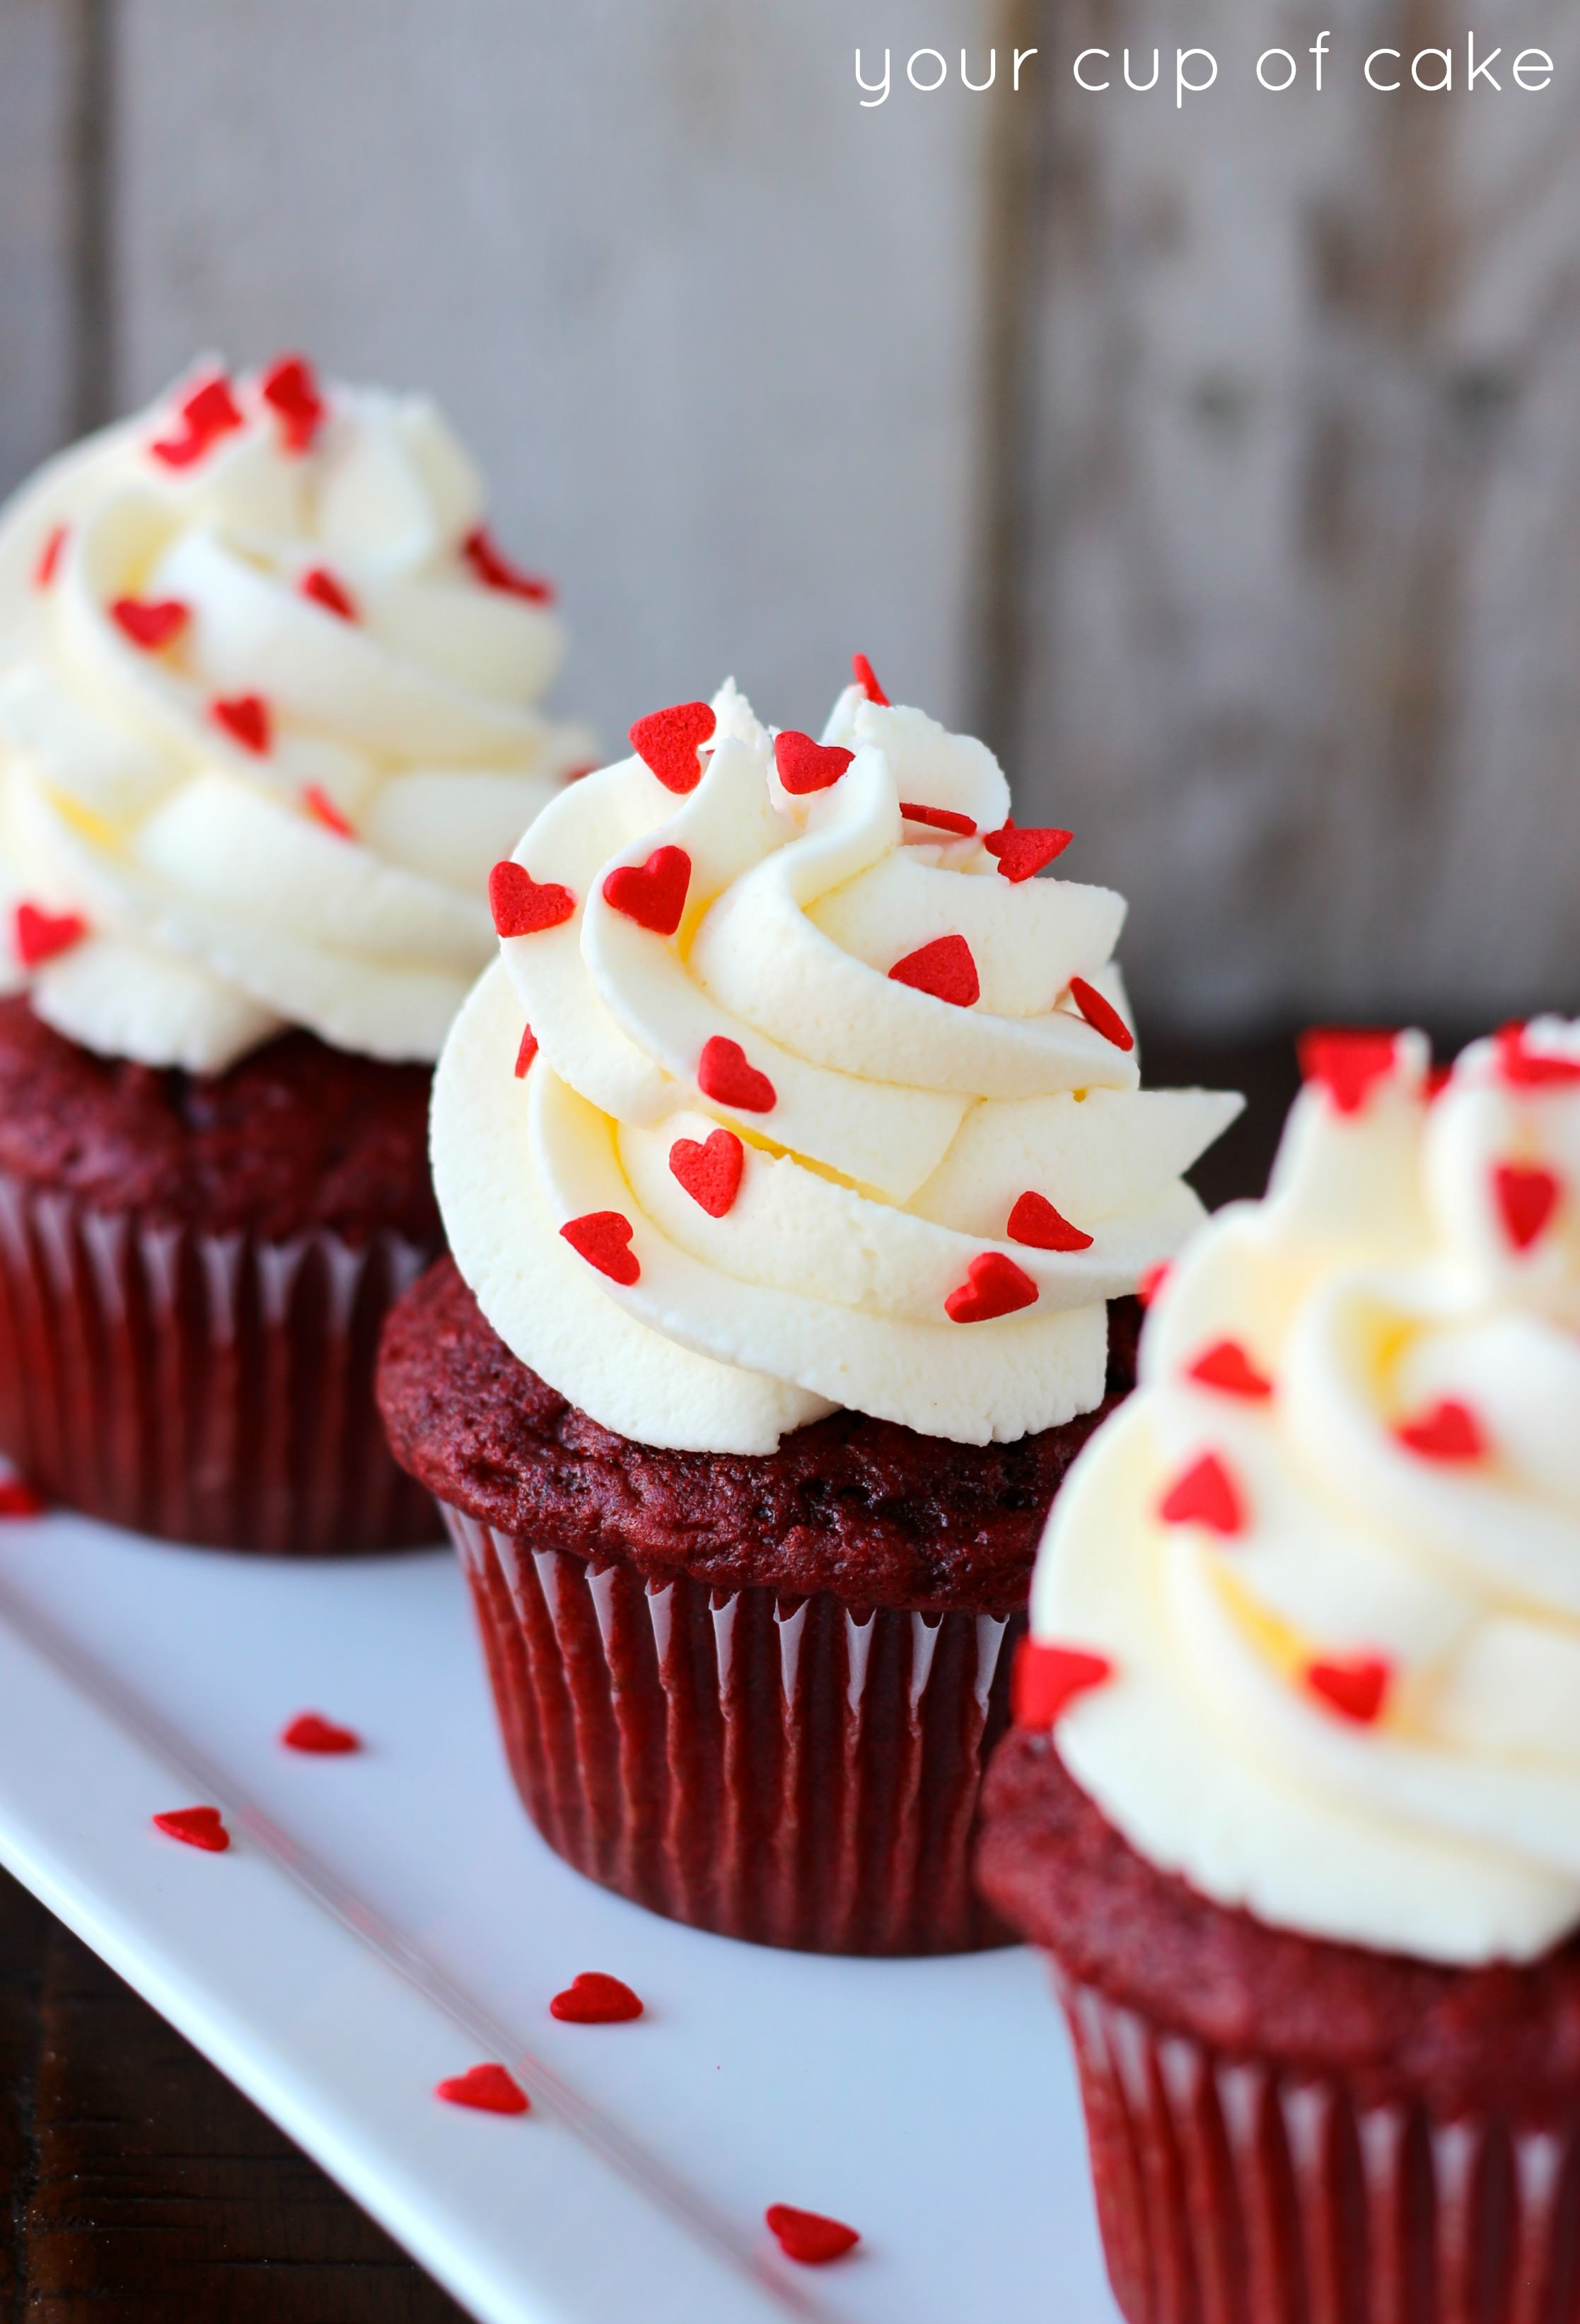 Red Velvet Cupcakes With White Chocolate Mousse Your Cup Of Cake